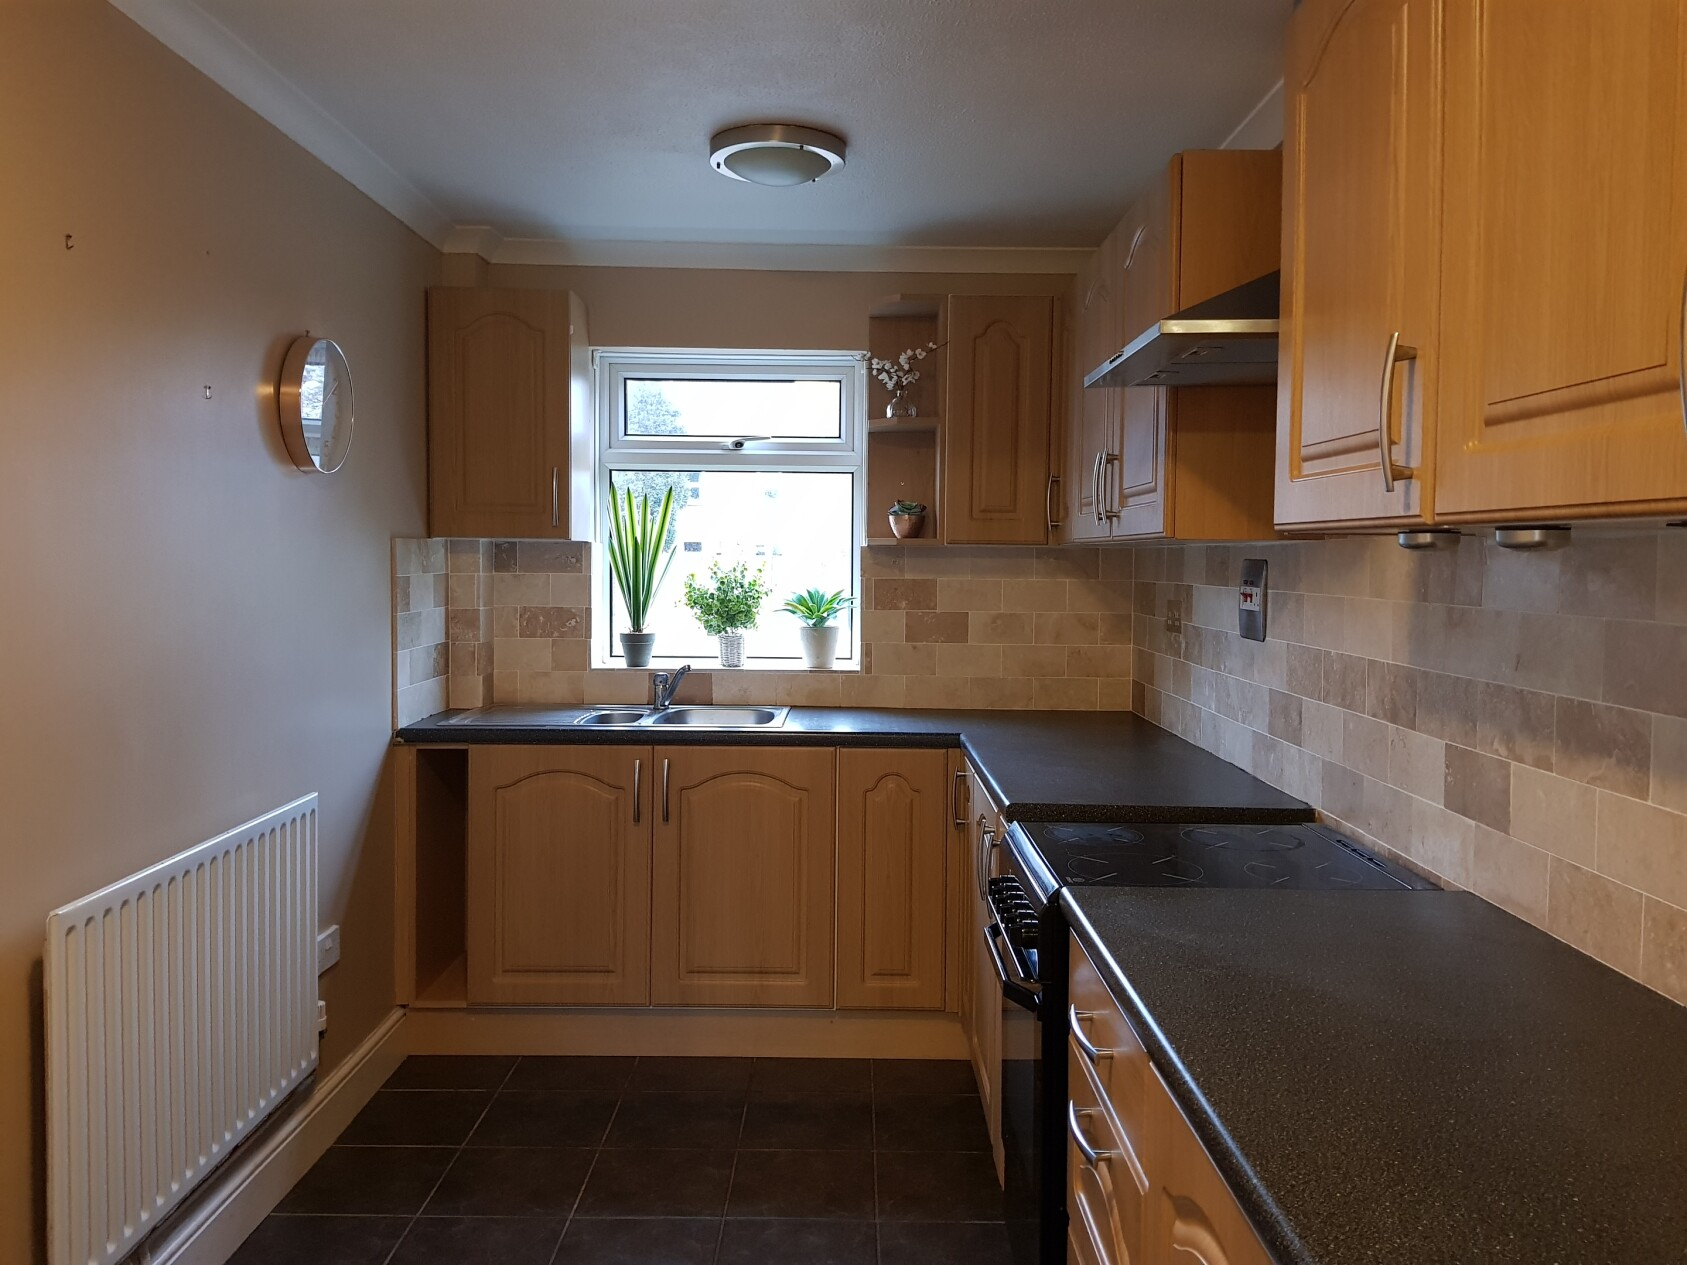 3 bedroom student house in Golden Triangle, Norwich